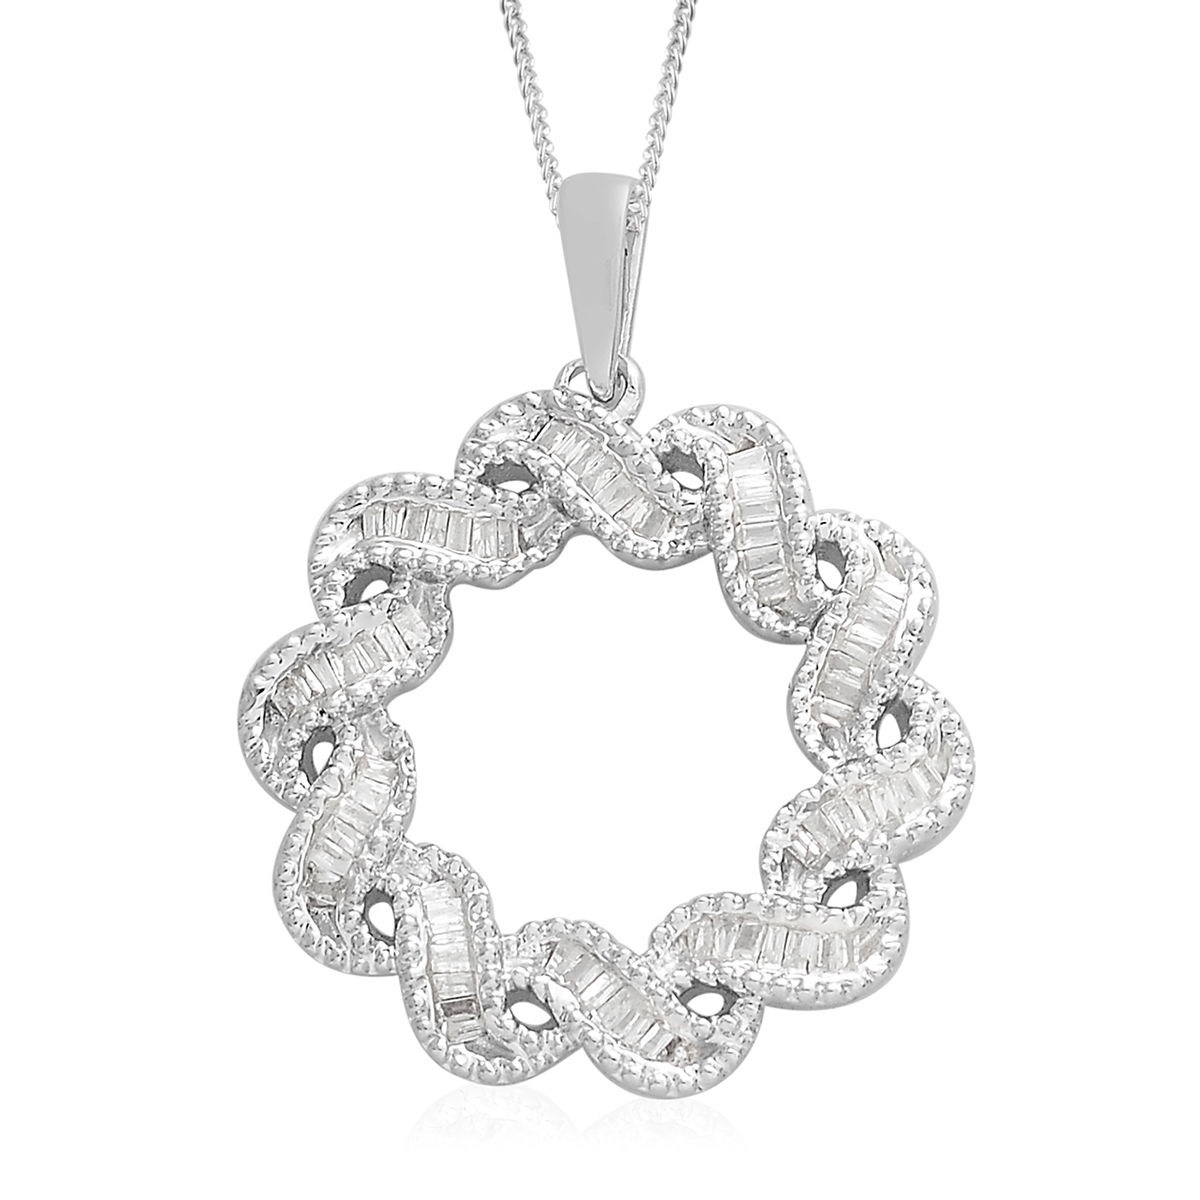 Diamond Twisted Wreath Pendant Necklace (18 In) In Platinum Over Sterling  Silver 0.33 Ctw Pertaining To Newest Diamond Wreath Necklaces (Gallery 21 of 25)